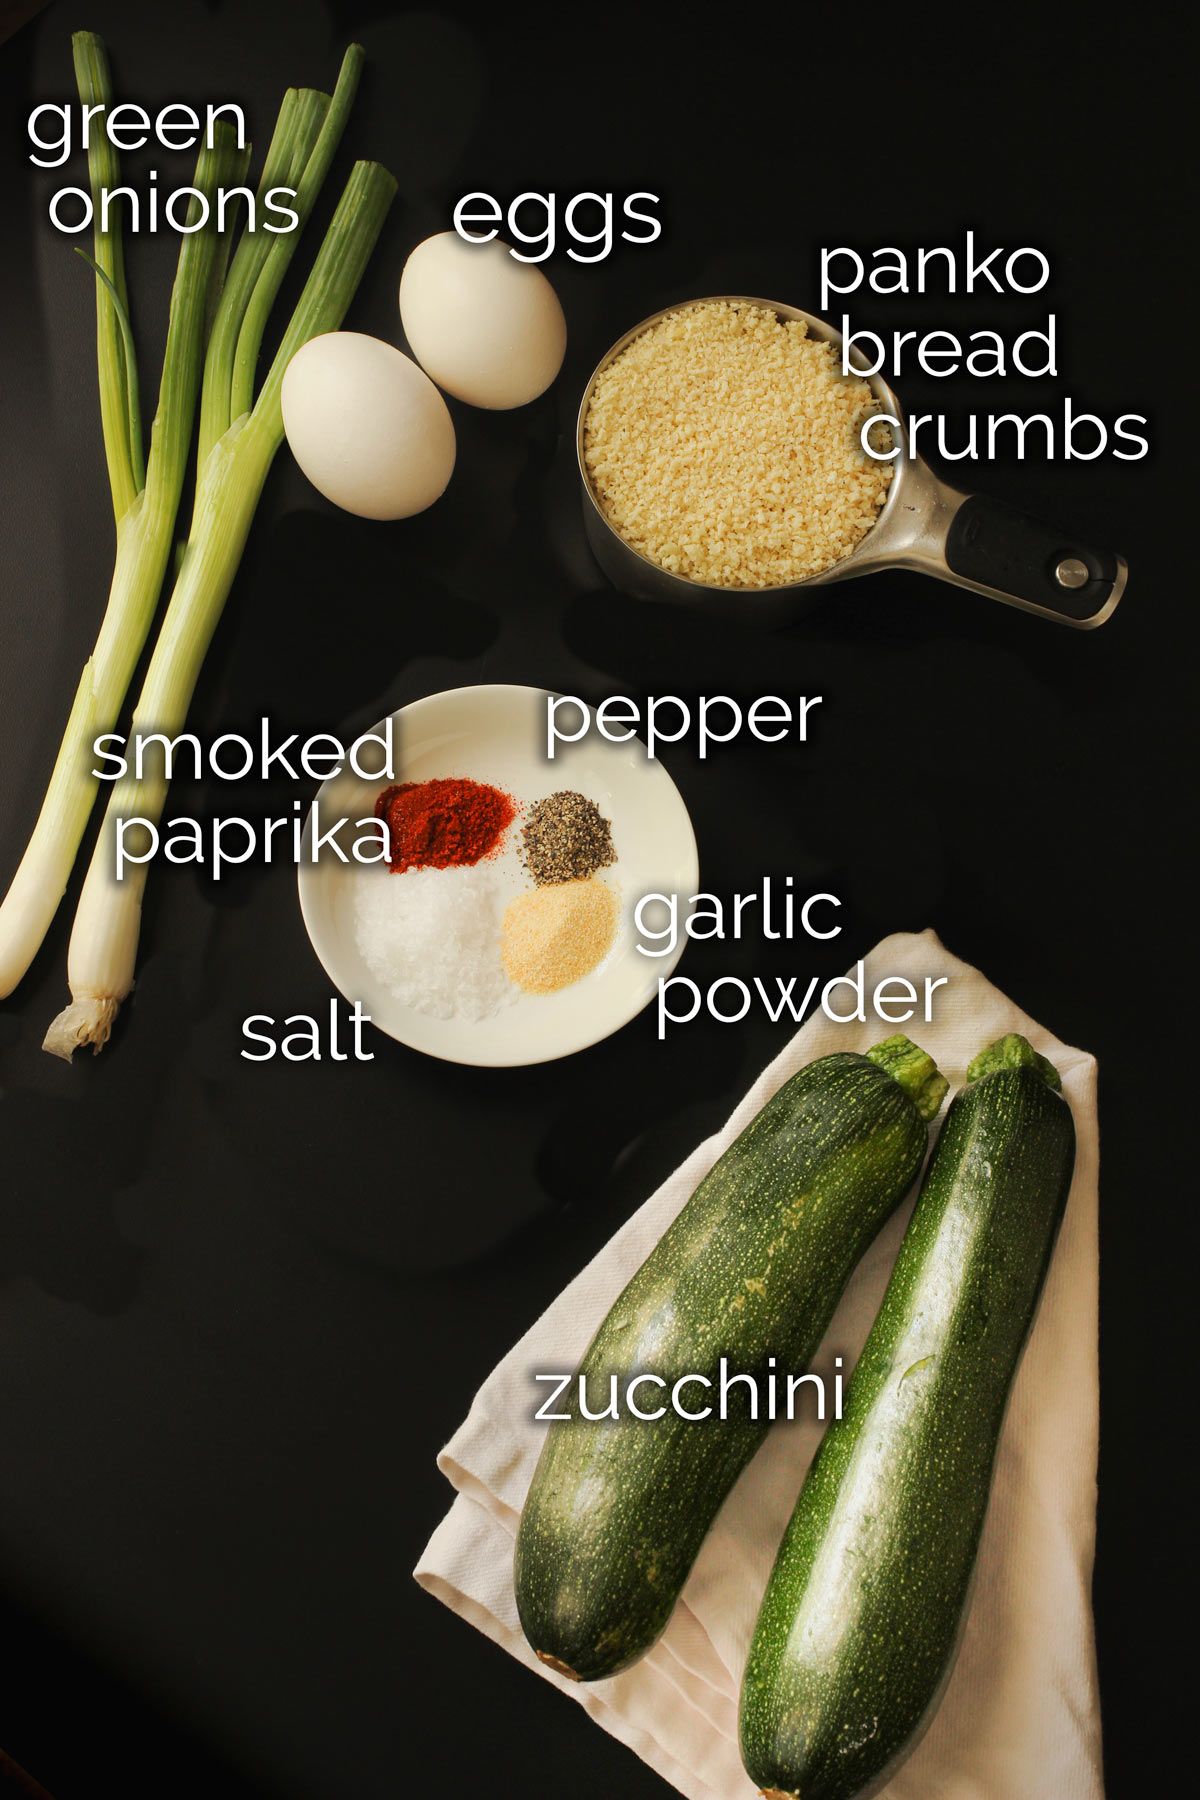 ingredients for baked zucchini fritters laid out on the tabletop.